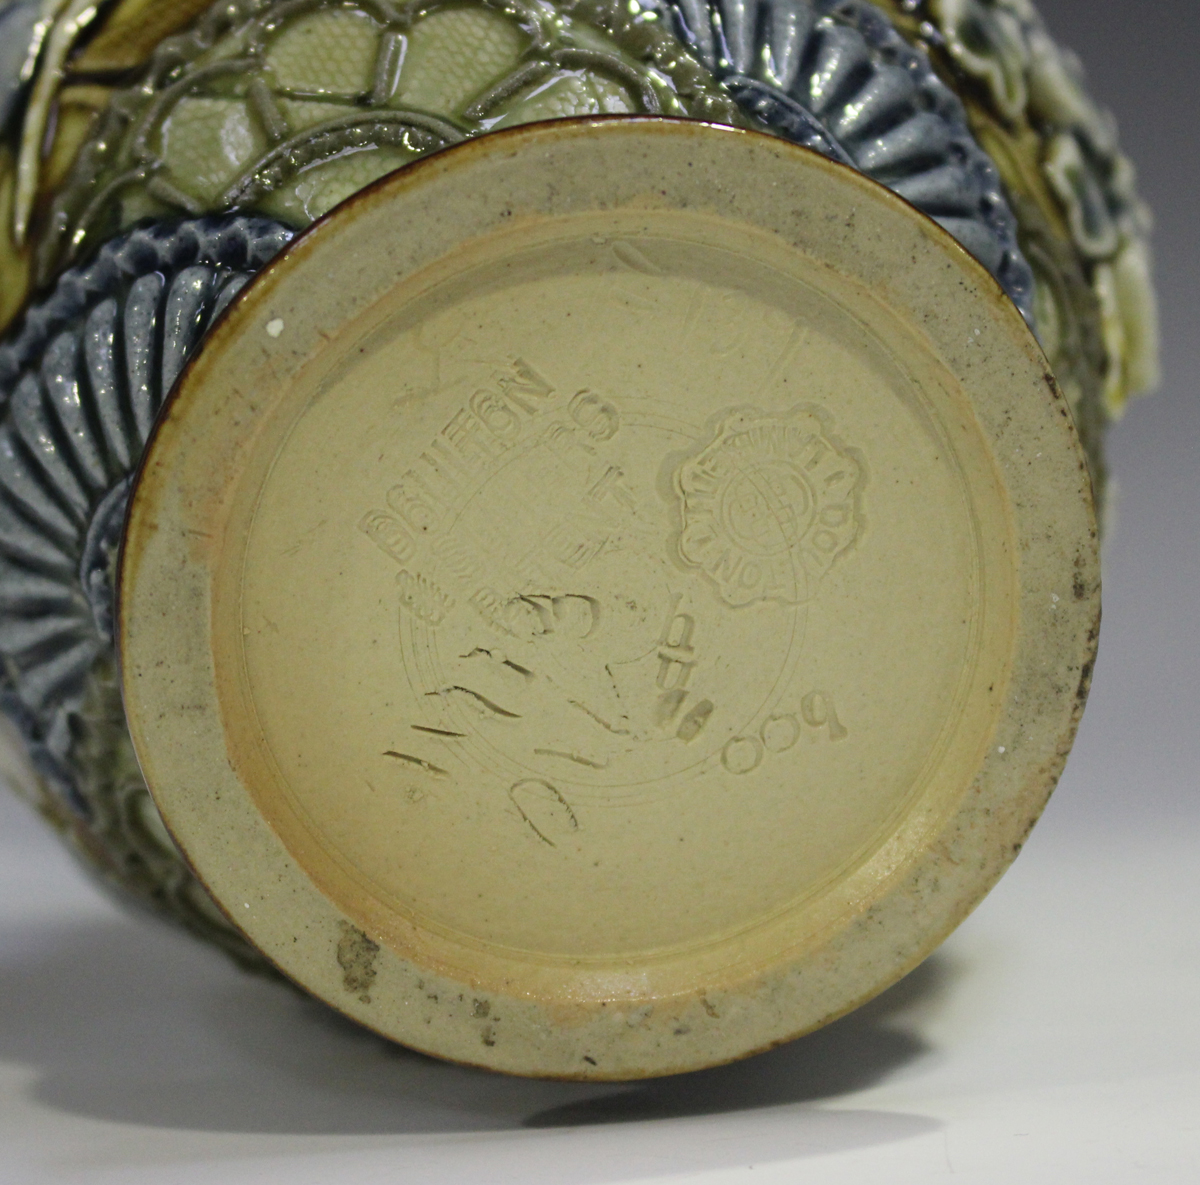 A Doulton Lambeth stoneware jug, 1880-1891, decorated in relief with flowers and stylized fan - Image 4 of 5